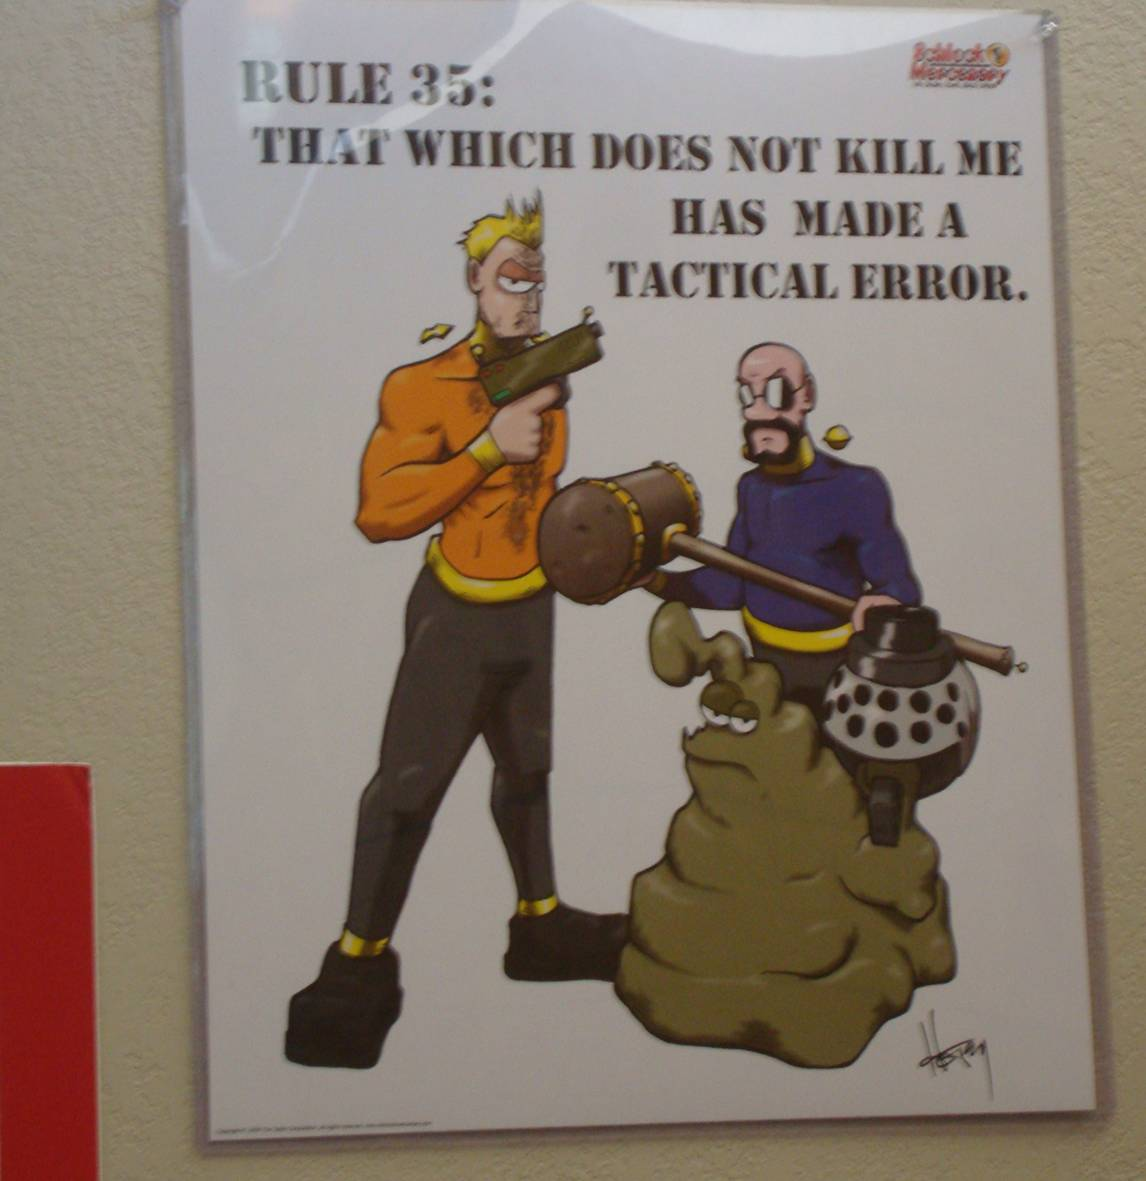 picture: poster for rule 35 of most effective pirates.  That which does not kill me has made a tactical error.